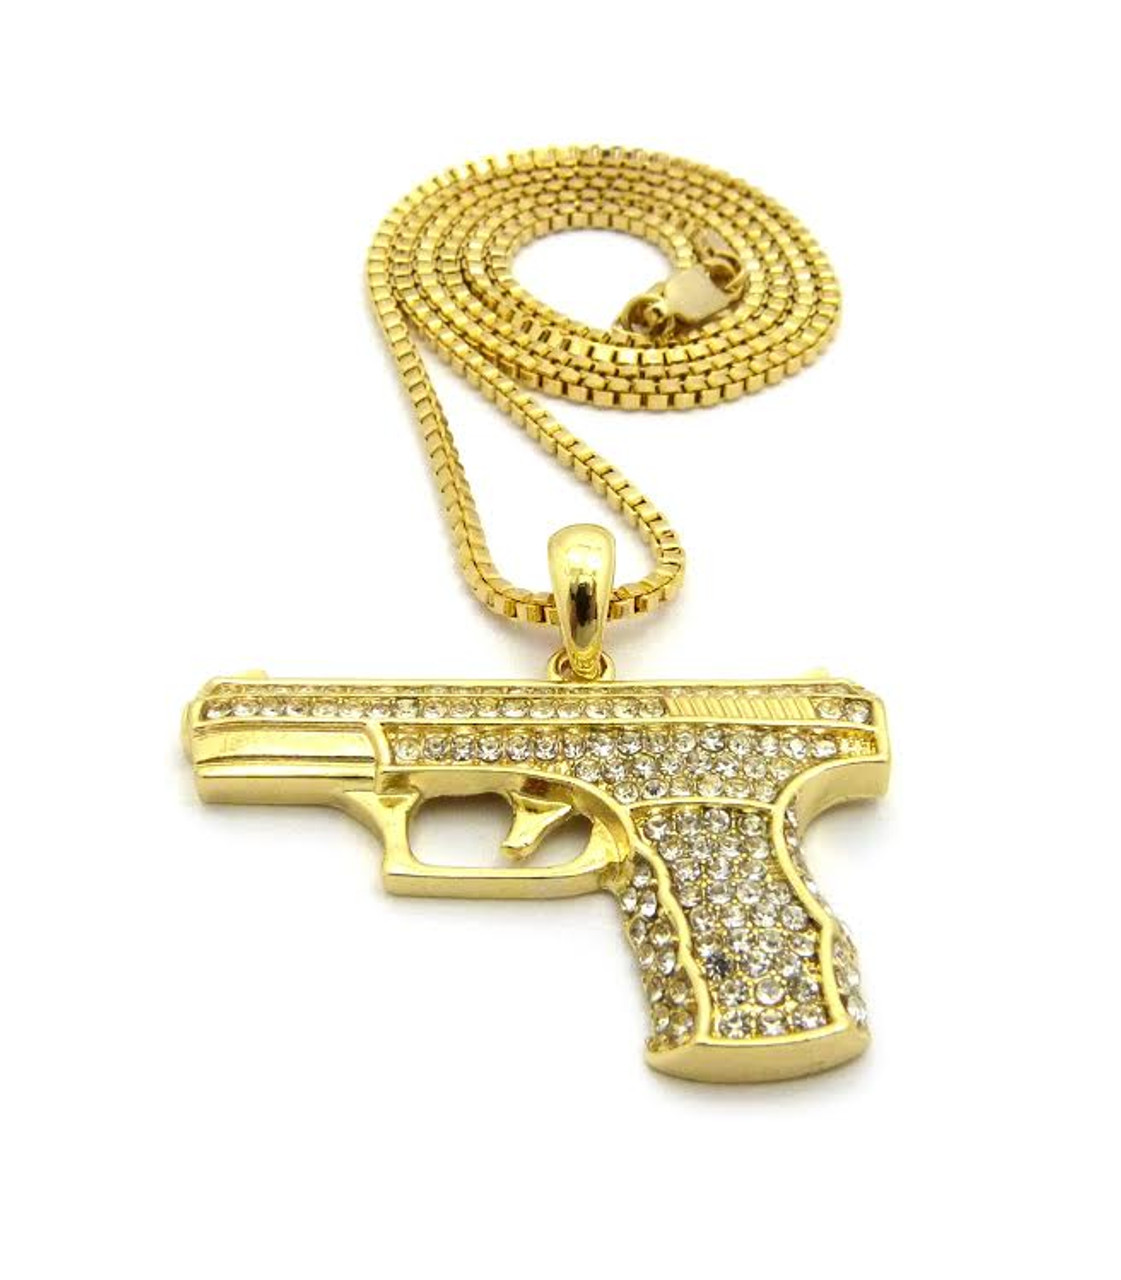 9mm gold gun 14k gold 9mm pistol pendant fully iced out wfree 36 chain aloadofball Image collections